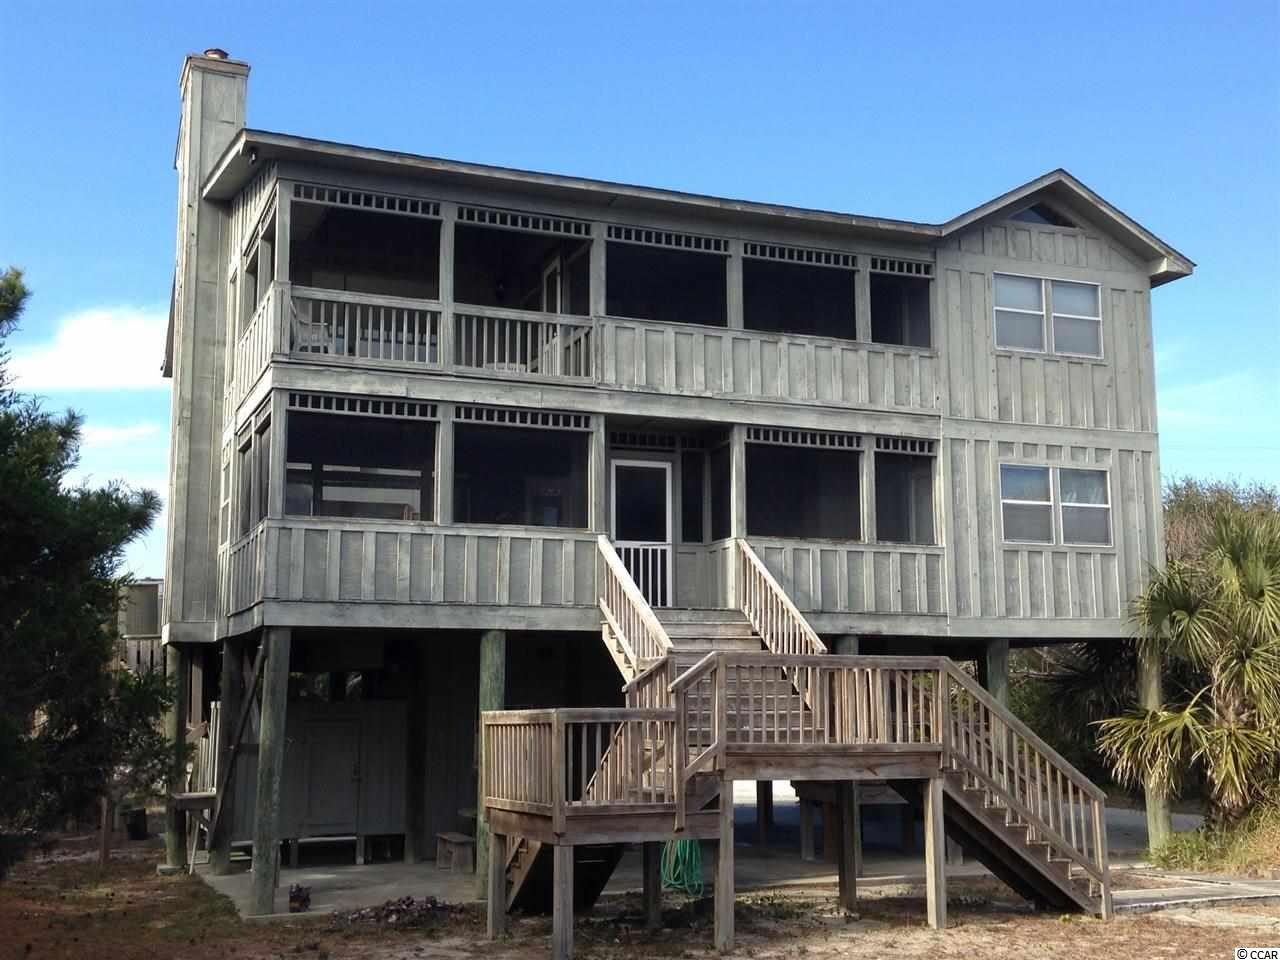 GREAT HOUSE   -    GREAT OCEAN VIEWS  -     PRIVATE BEACH WALKWAY               Wonderful Location at the North End of Pawleys Island.                              Four Bedroom Raised Drivin Pier Foundation Beach House. Wood floors, High ceilings, Screened Porches. Large Lot Location. Room for a POOL.      -  **** OCEANFRONT WITHOUT THE OCEANFRONT PRICE ****